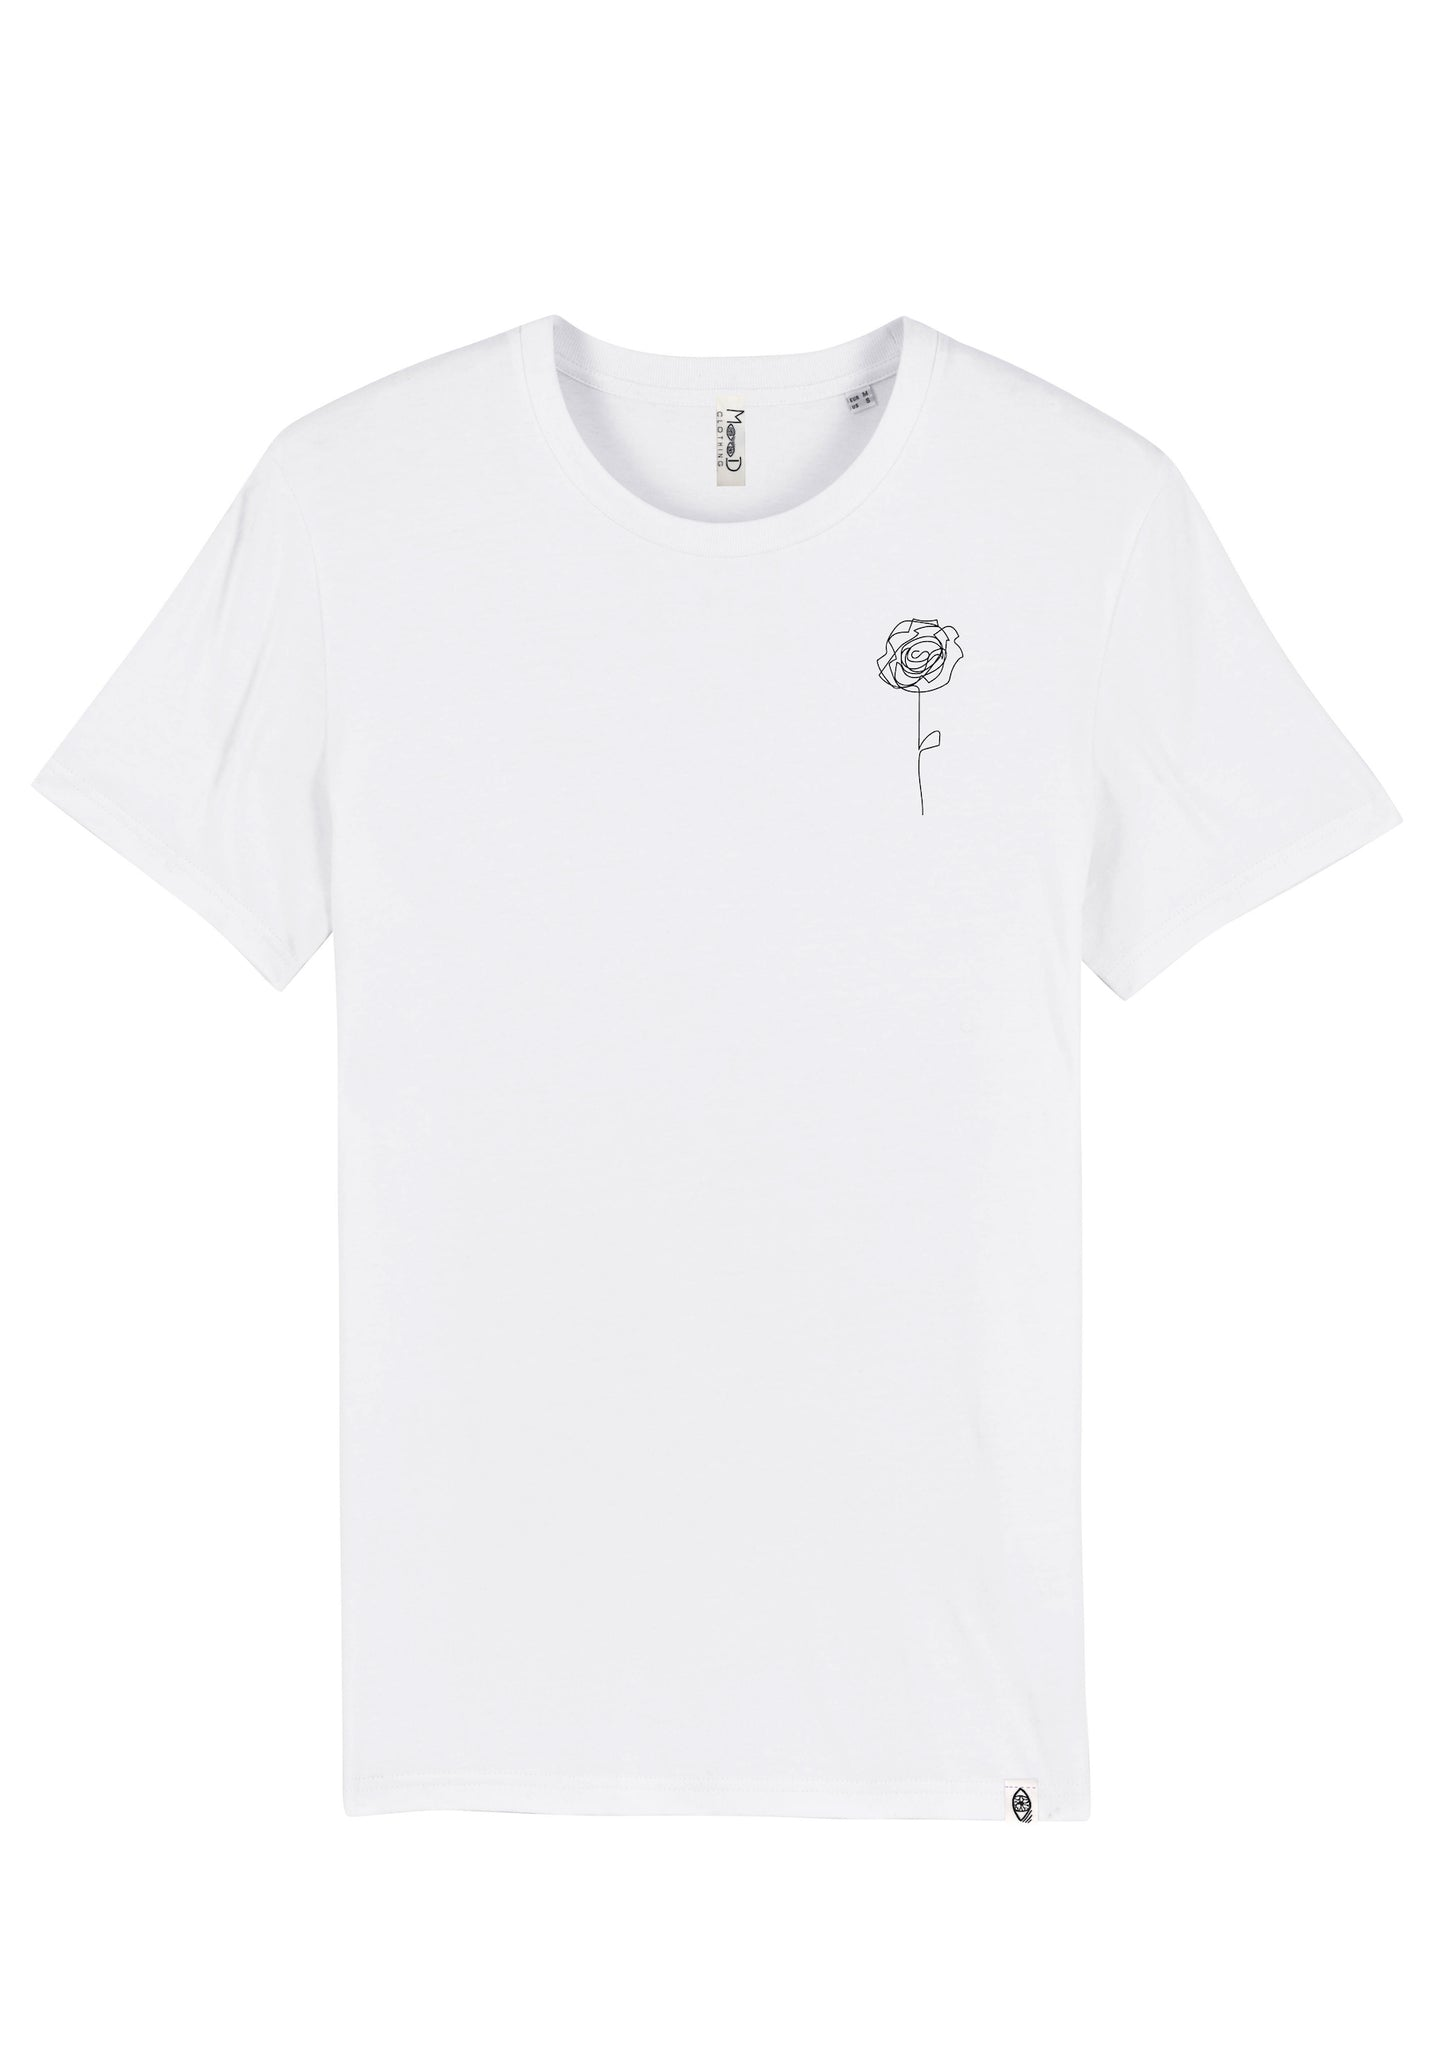 T-shirt Blanc - Rose one line - Mood Clothing